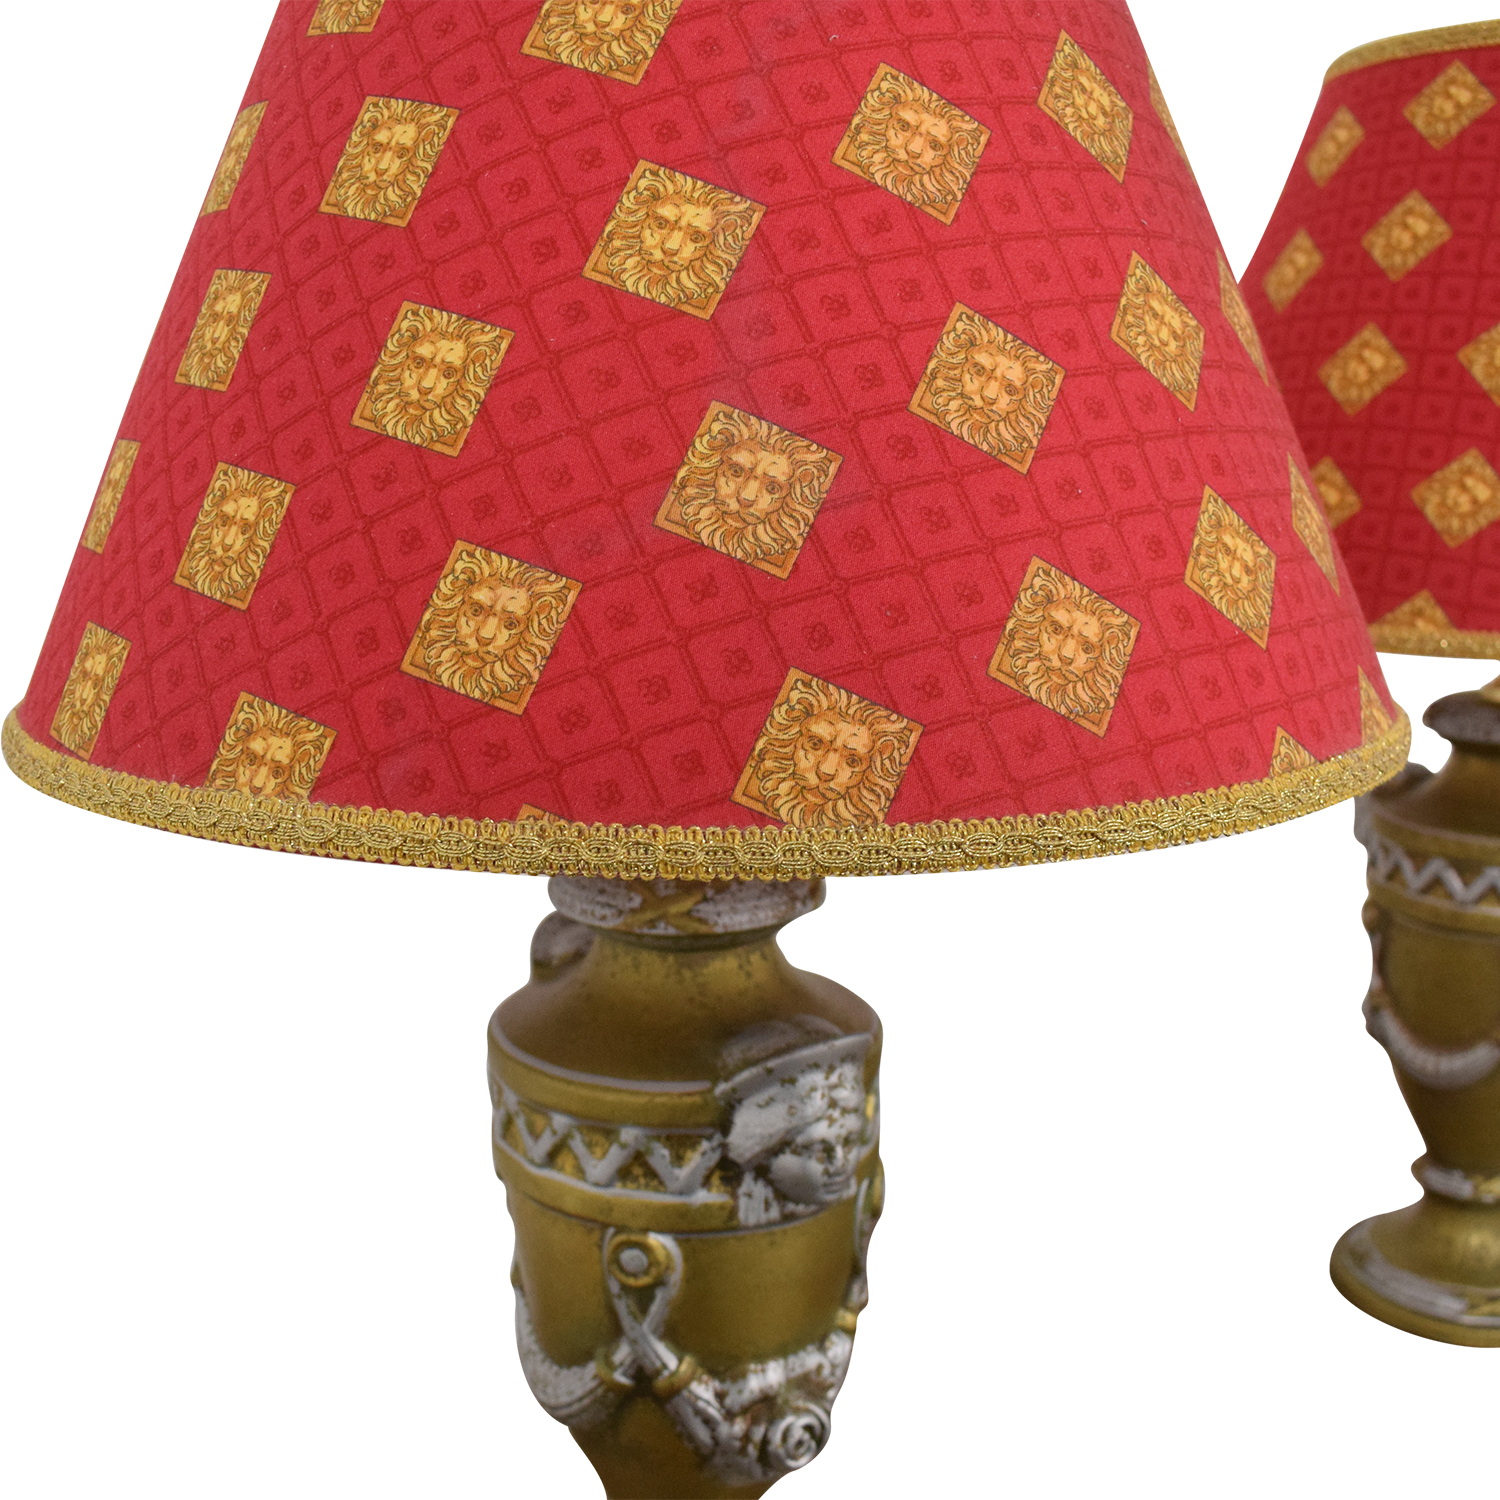 Versace Versace Table Lamps Decor